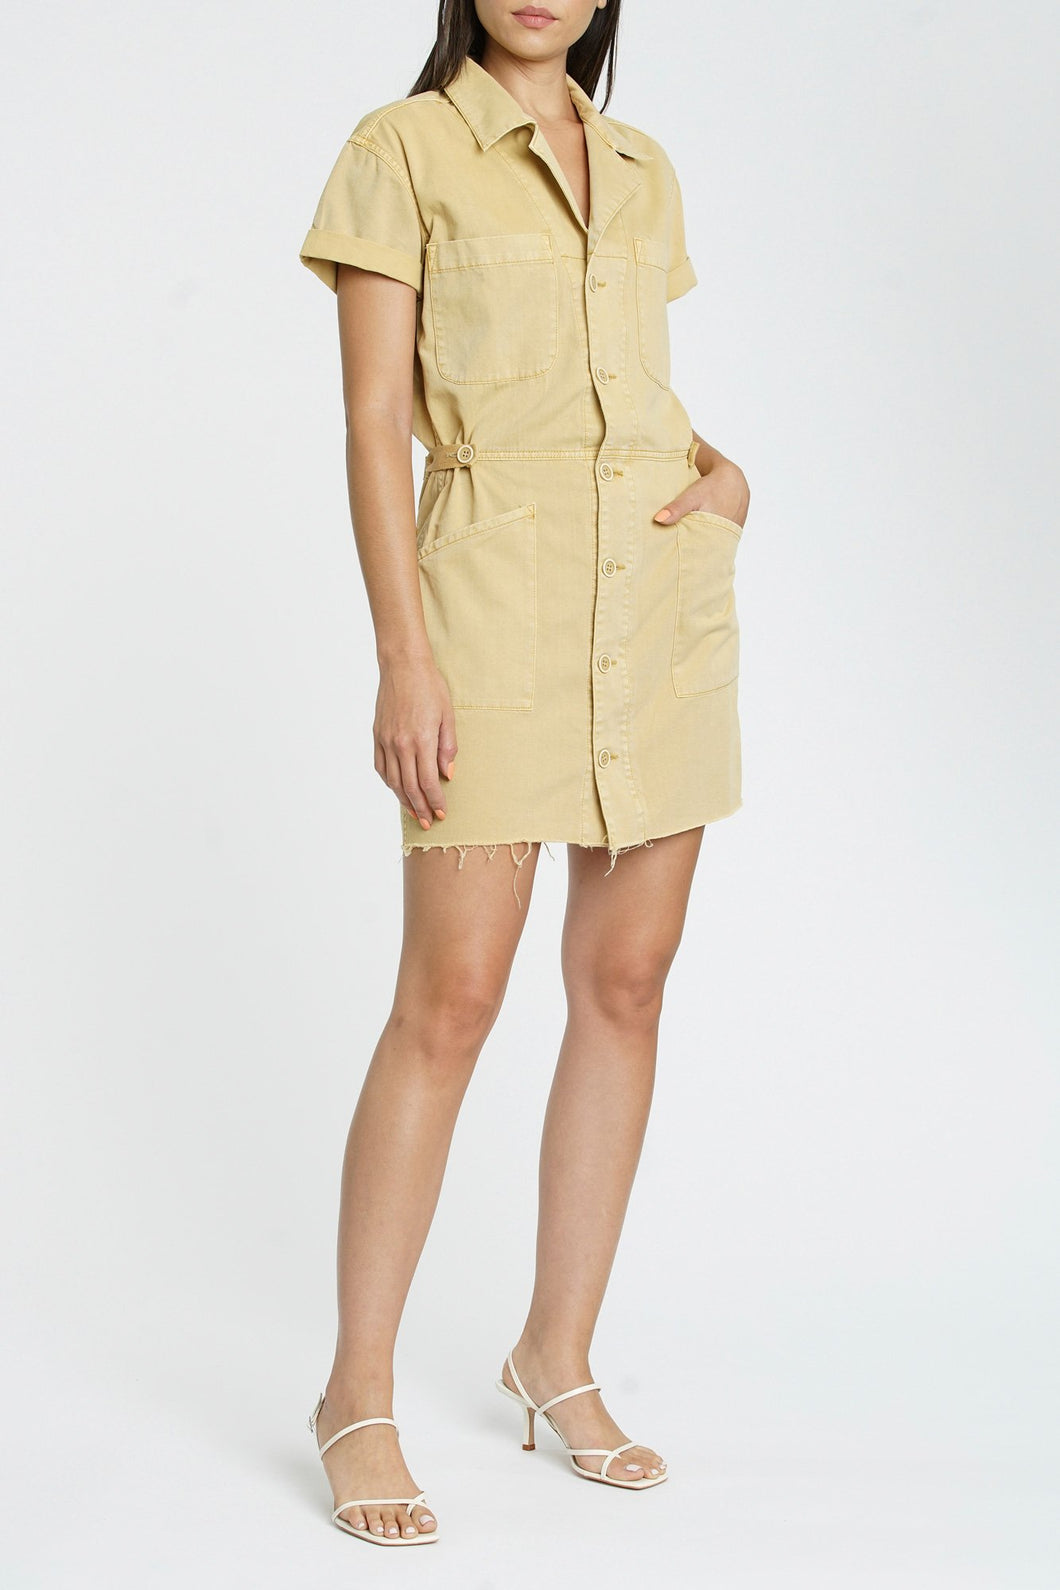 Clara Field Suit Dress - civvies - indianapolis clothing boutique